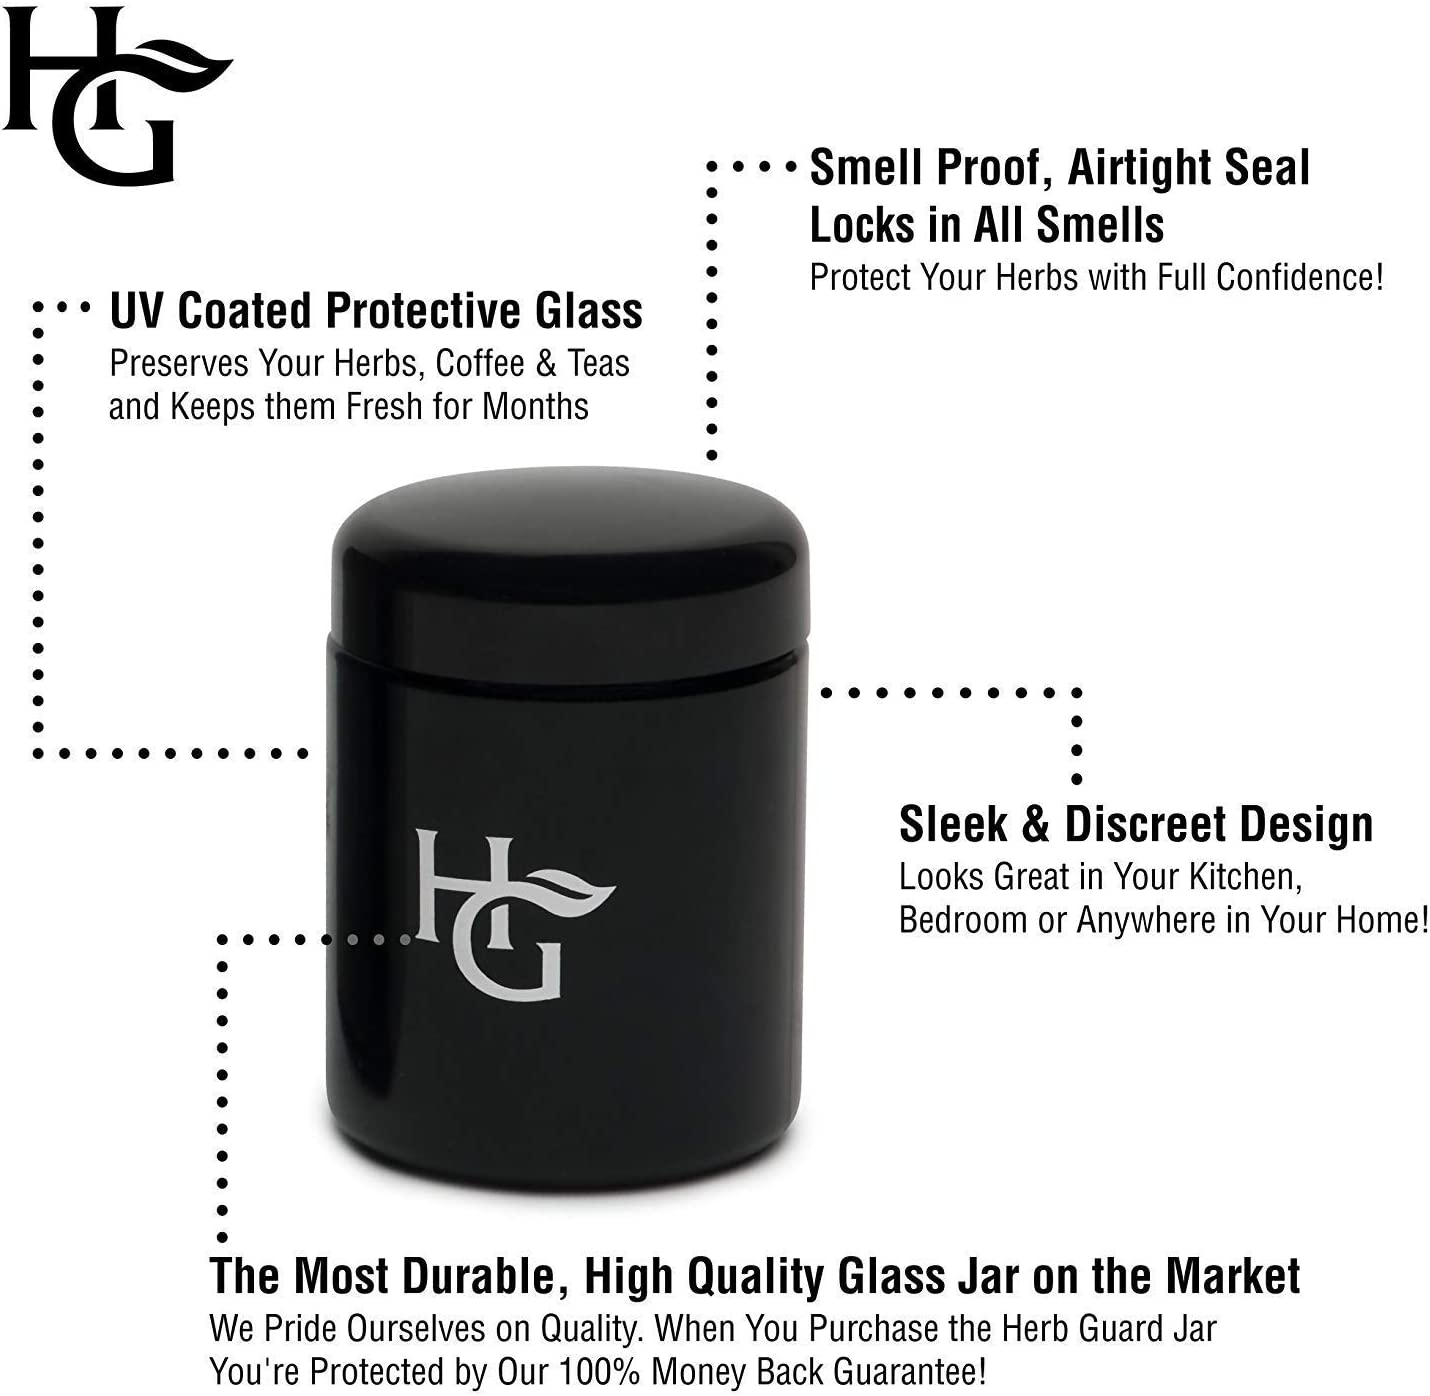 Herb Container - Half Oz Smell Proof Stash Jar (250 ml) Comes with Humidity Pack to Keep Goods Fresh for Months